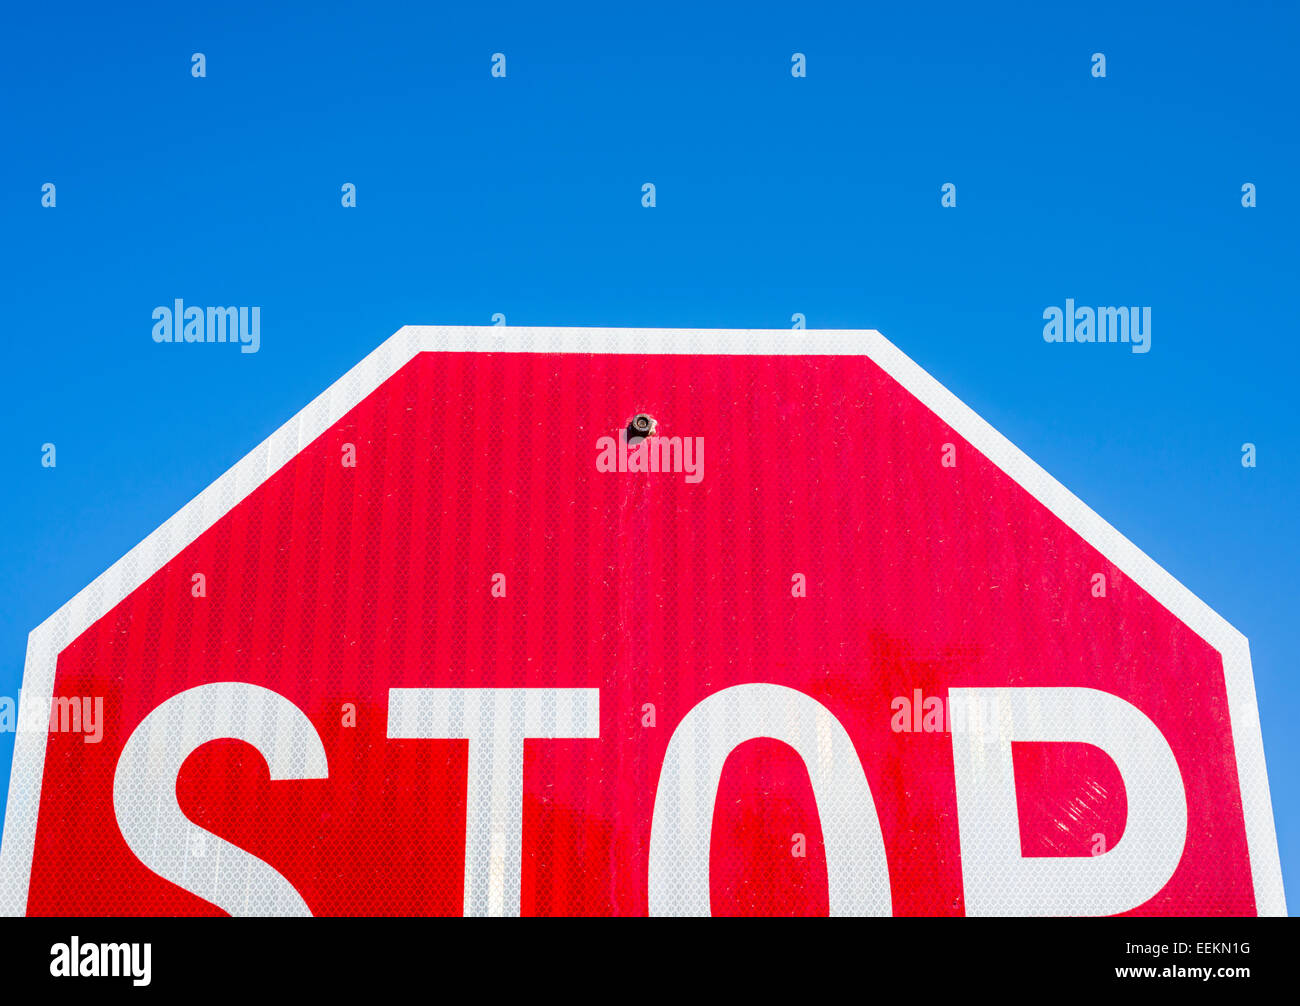 Conceptual image showing a half of a stop sign. Don't stop halfway. - Stock Image